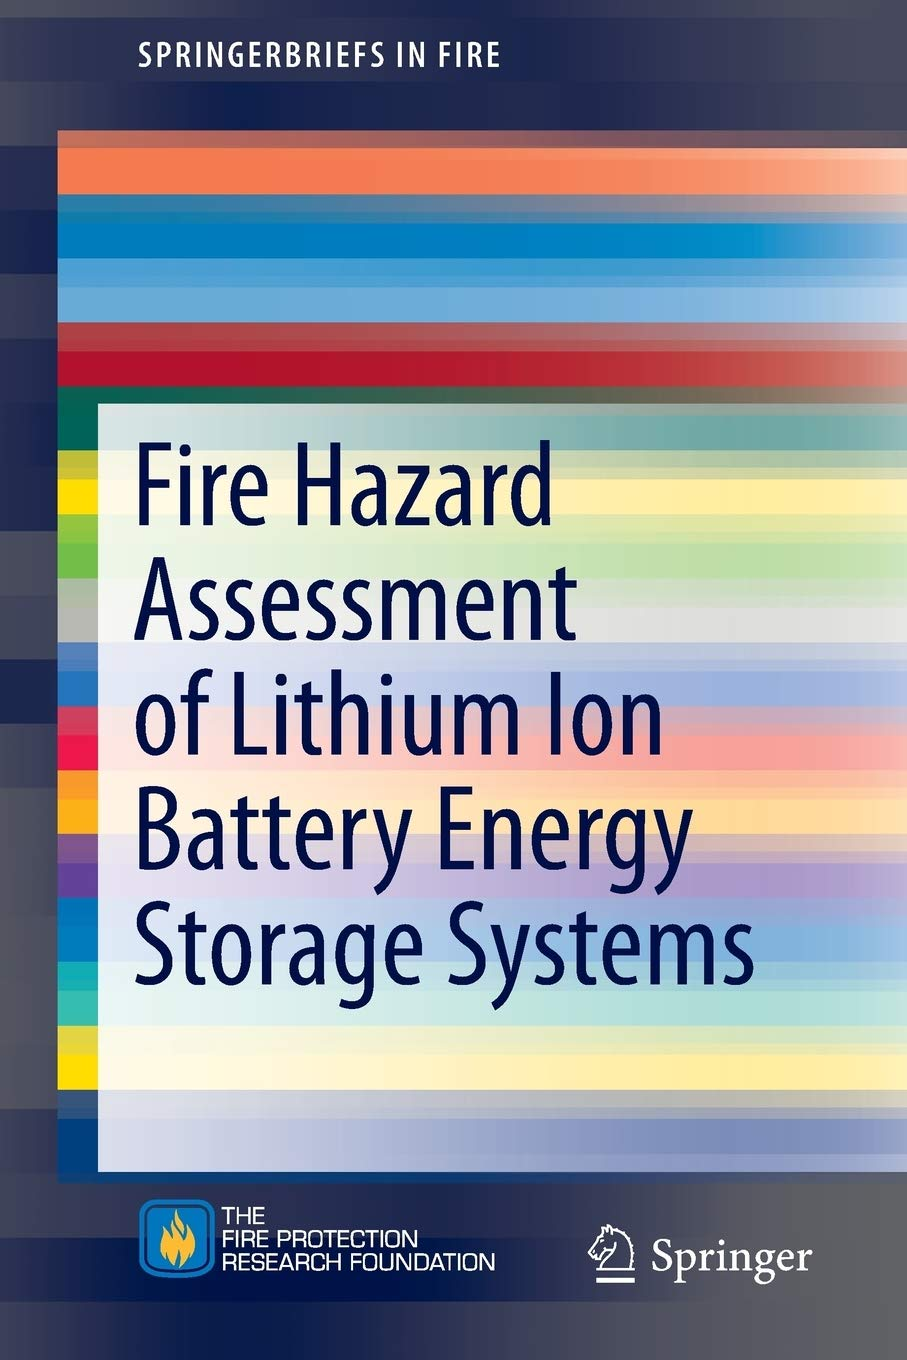 Fire Hazard Assessment of Lithium Ion Battery Energy Storage Systems (SpringerBriefs in Fire) by Springer